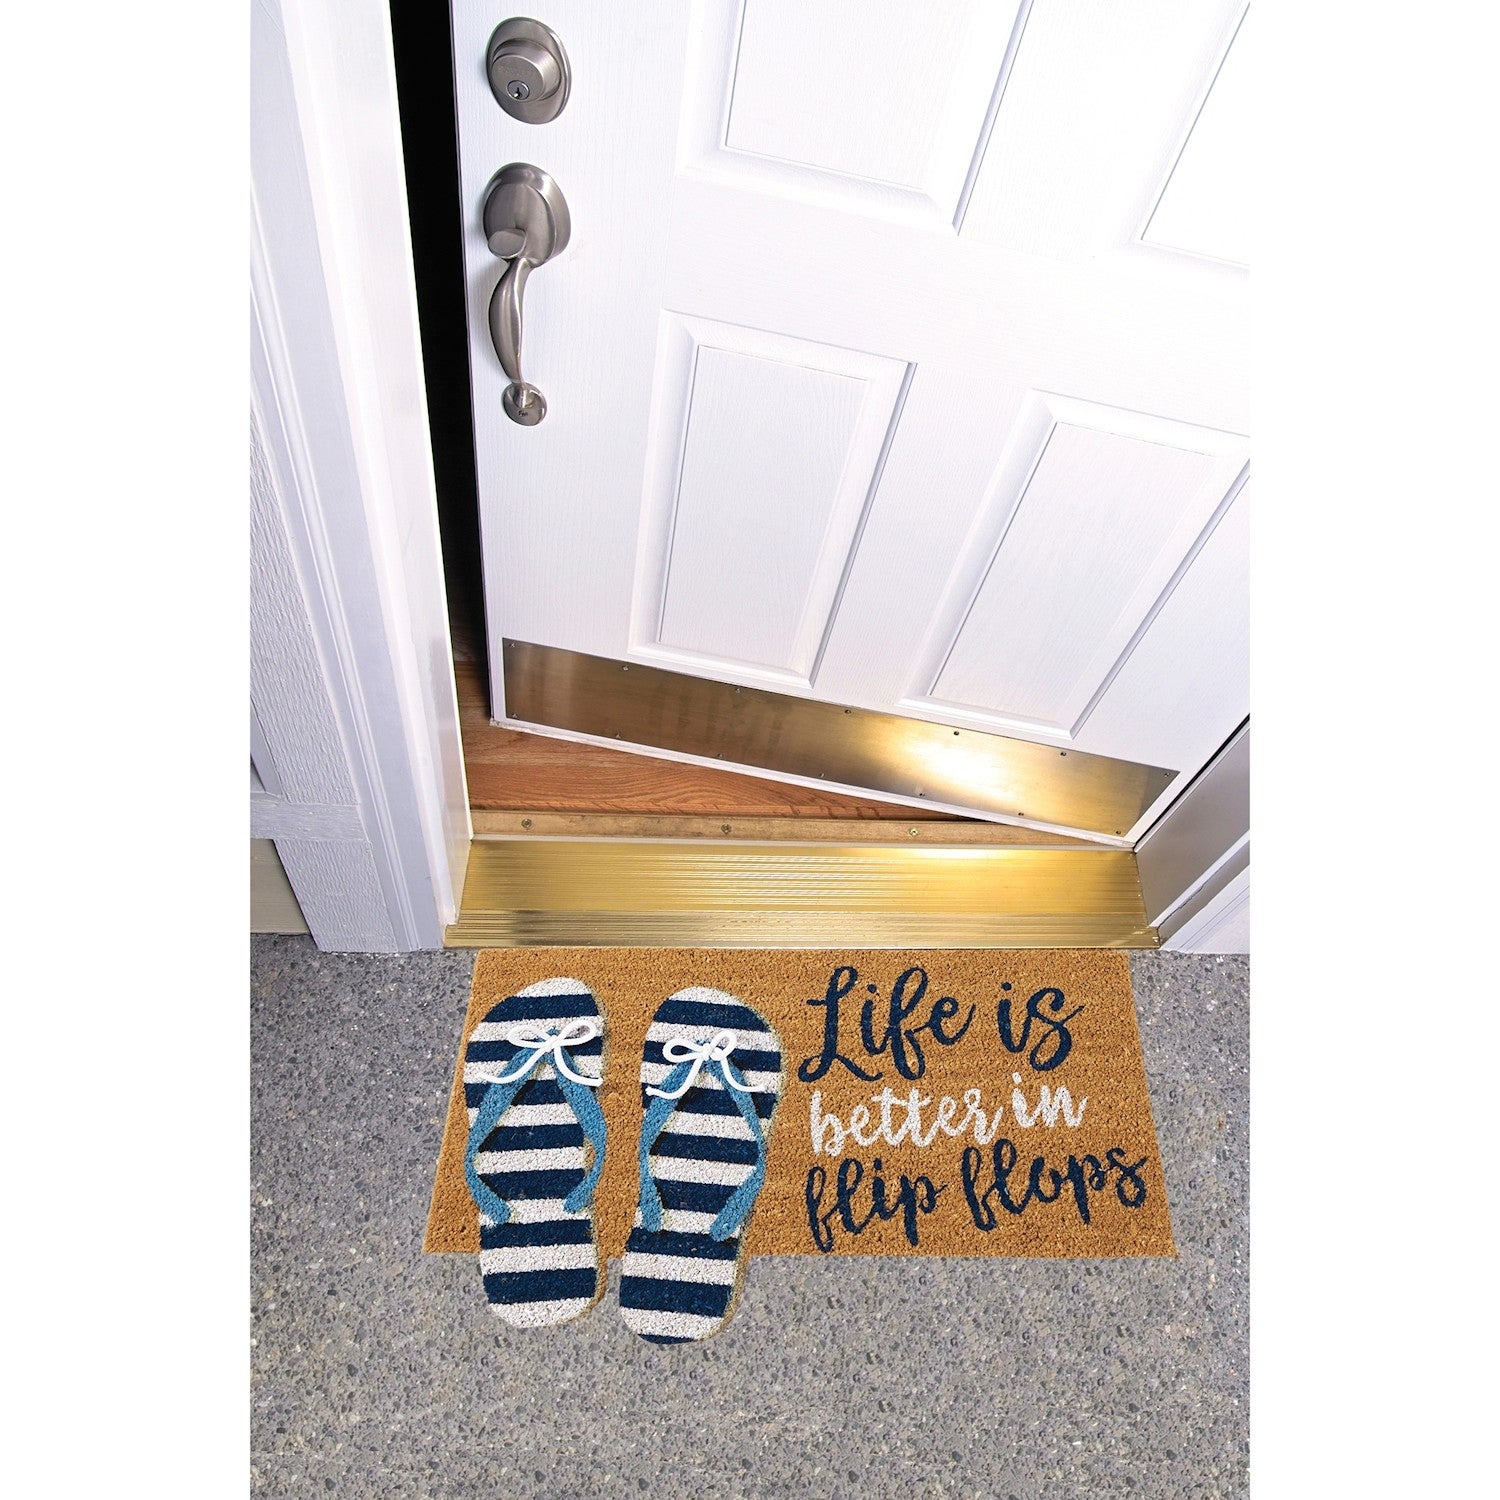 f6e96fc99 Shop Mud Pie Life Is Better In Flip-Flops Doormat - Coir Welcome Door Mat -  Home Decor Accessory - Biodegradable - 18 in. 29.5 in. - Free Shipping On  Orders ...